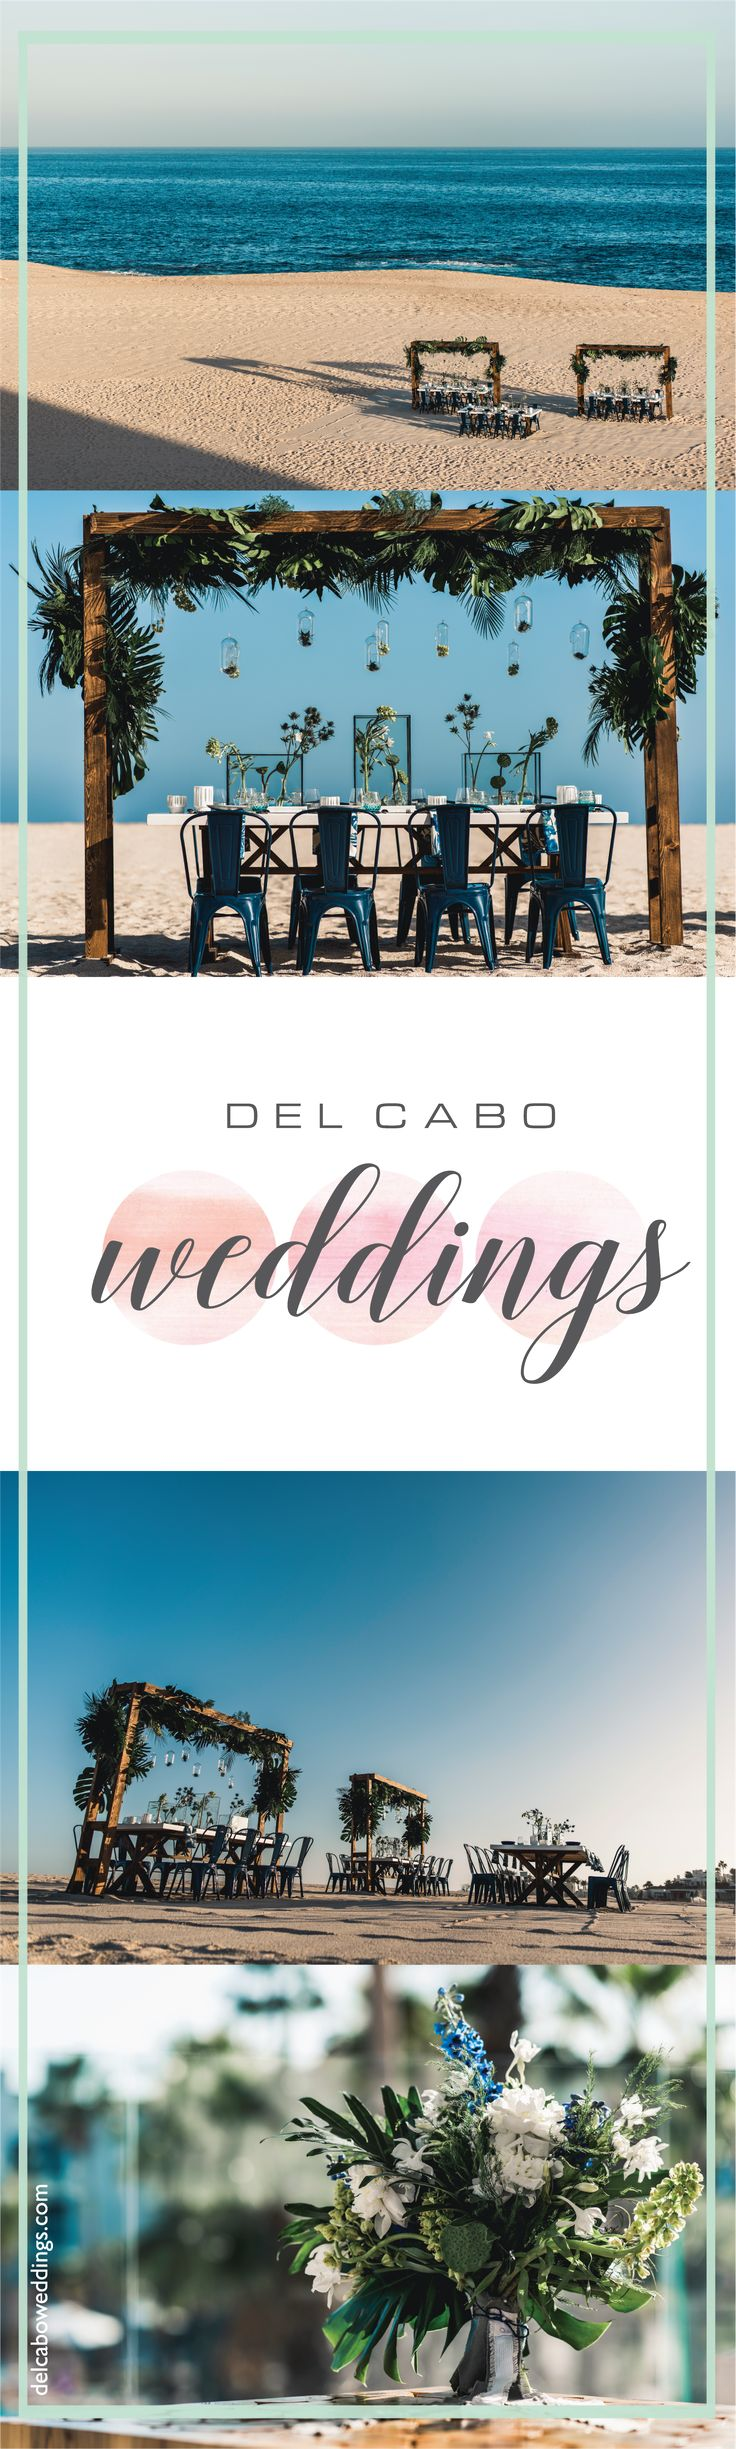 Del Cabo Weddings, the best destination wedding firm in Cabo! Click on the photo and learn more about our services!